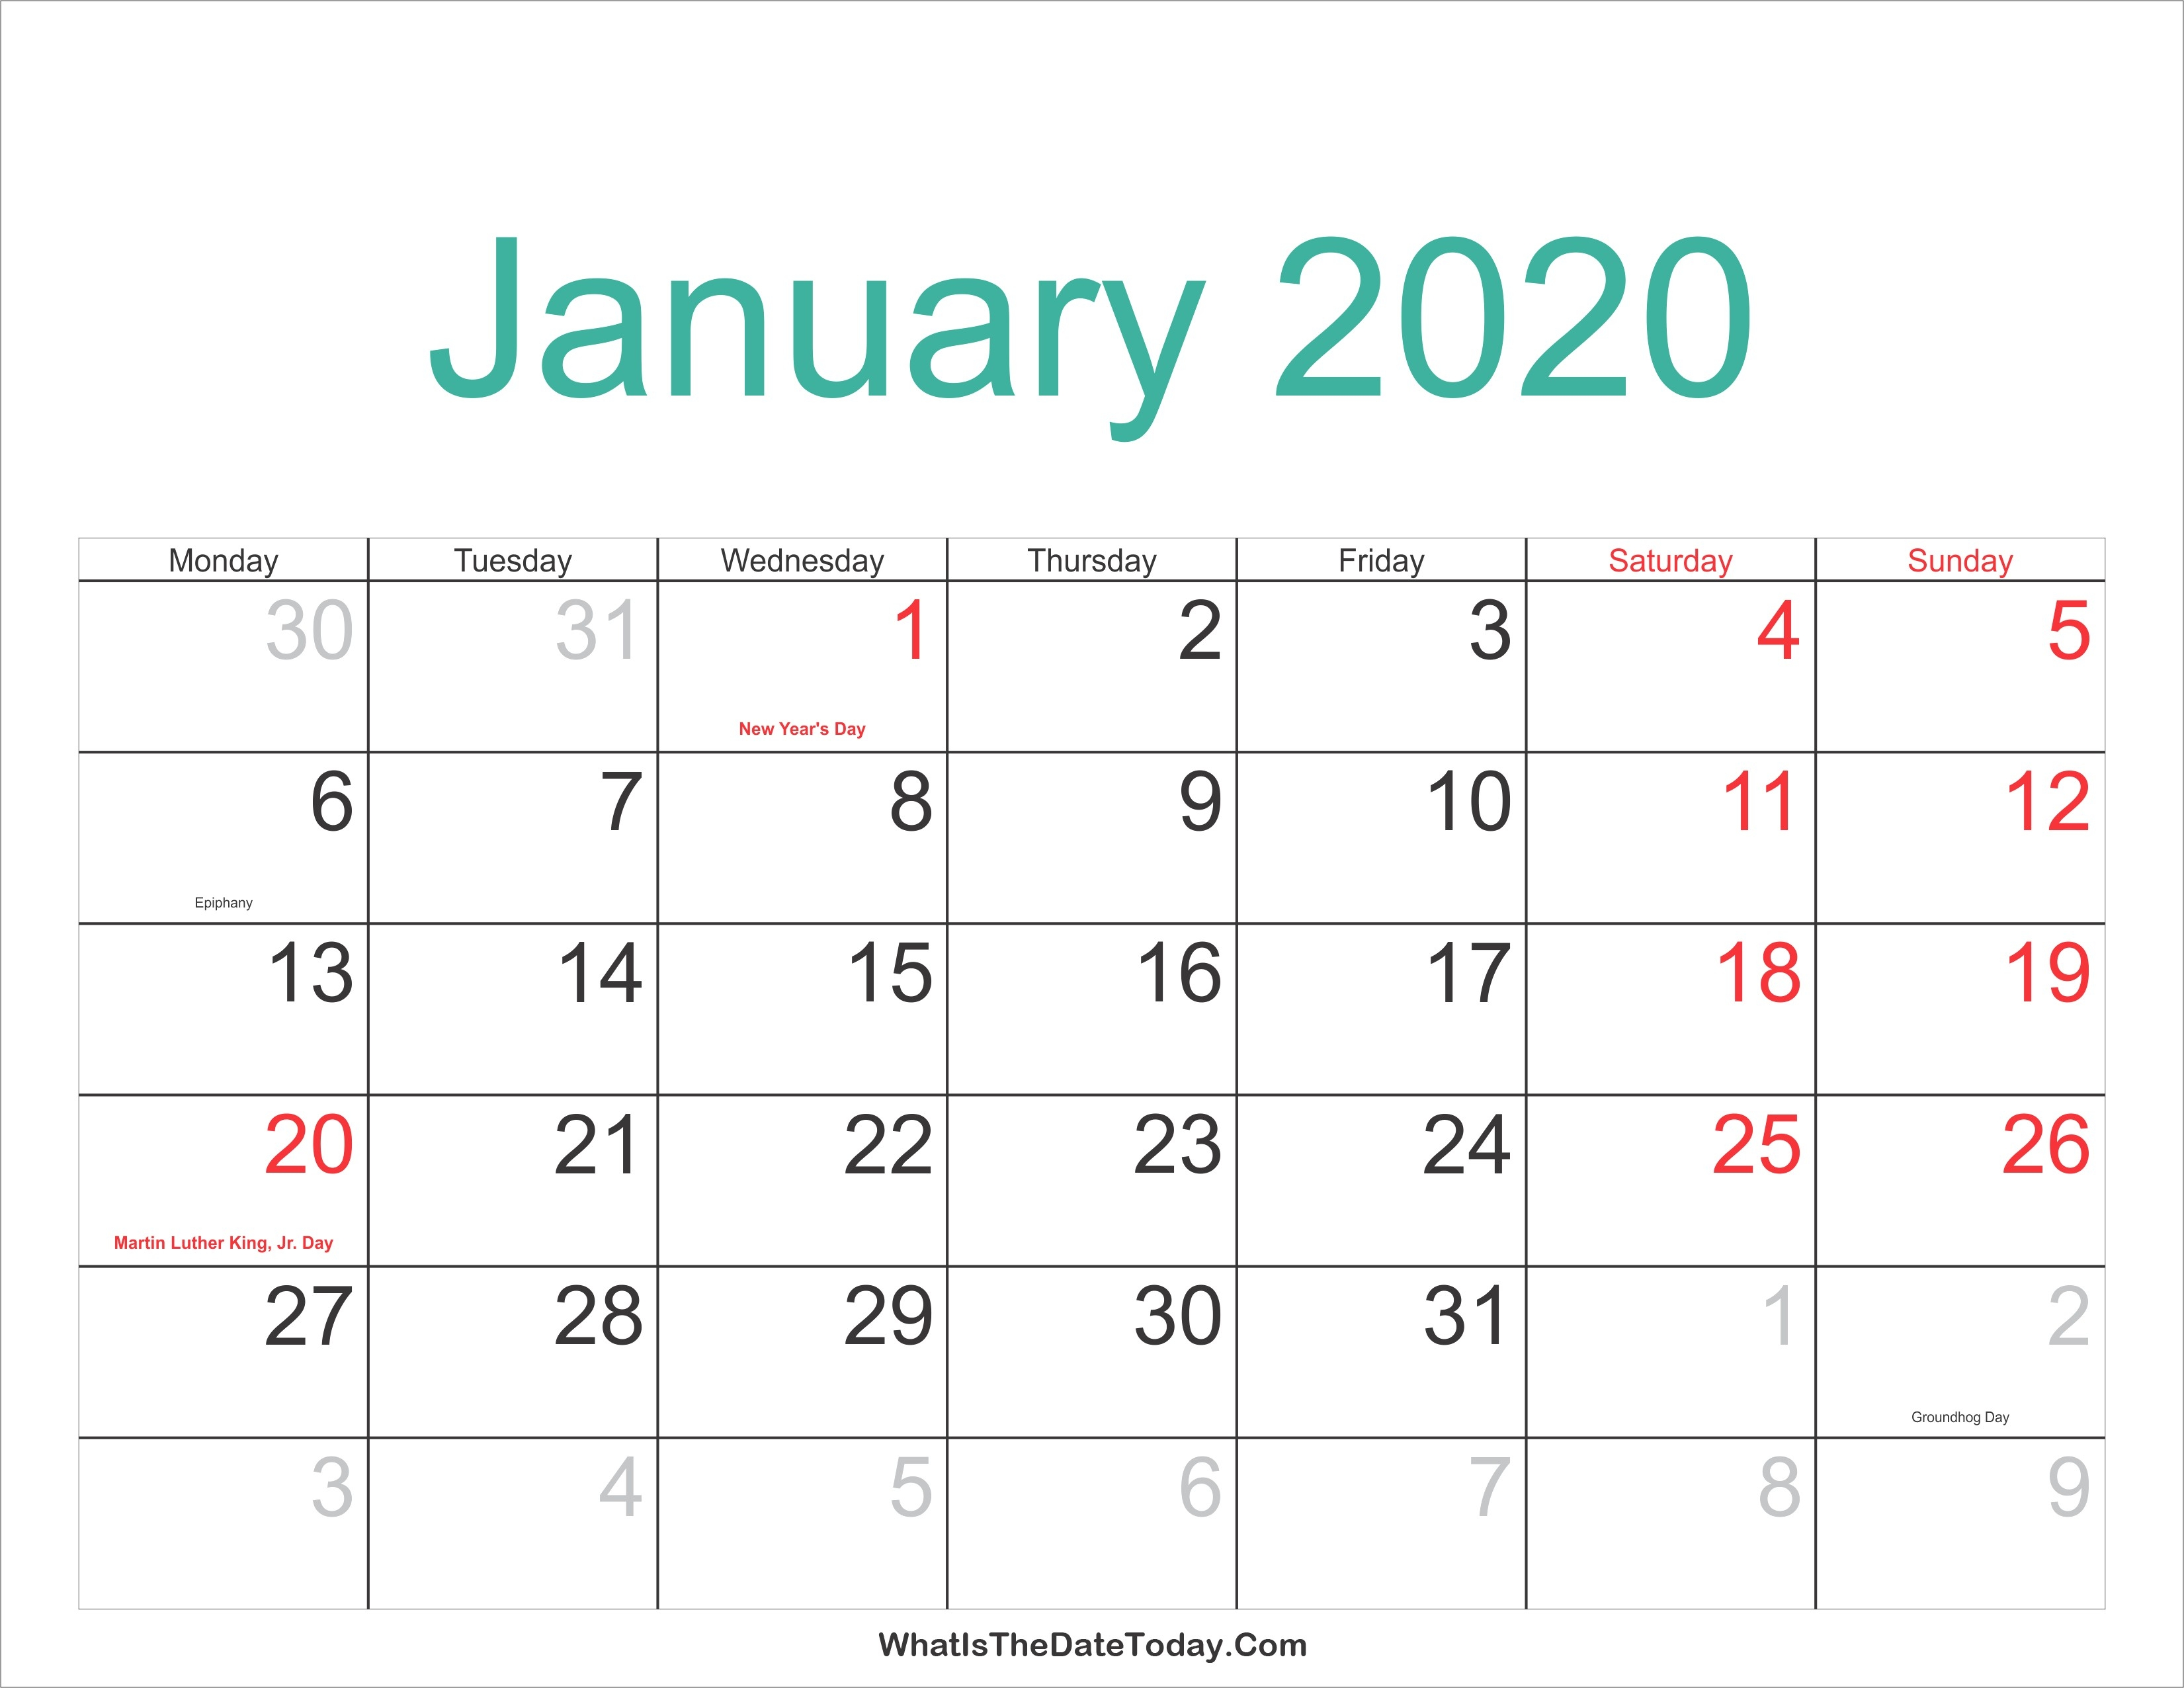 January 2020 Calendar Printable Holidays Full | Jcreview-January 2020 Lunar Calendar